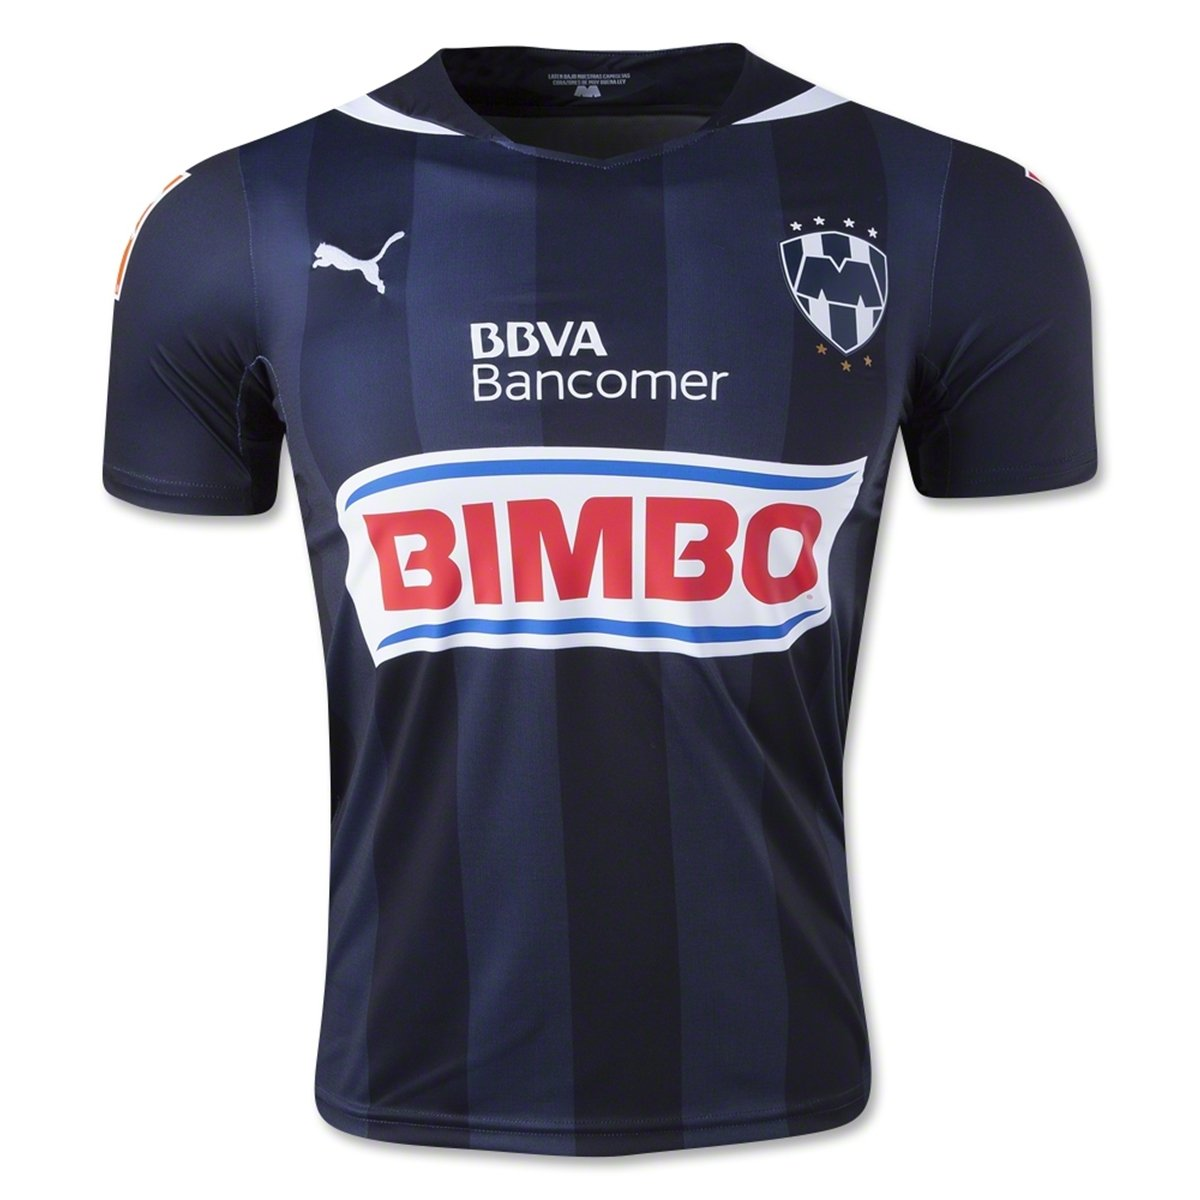 more photos 21b41 6ed70 Amazon.com : PUMA Monterrey Away Jersey 14/15 : Sports ...